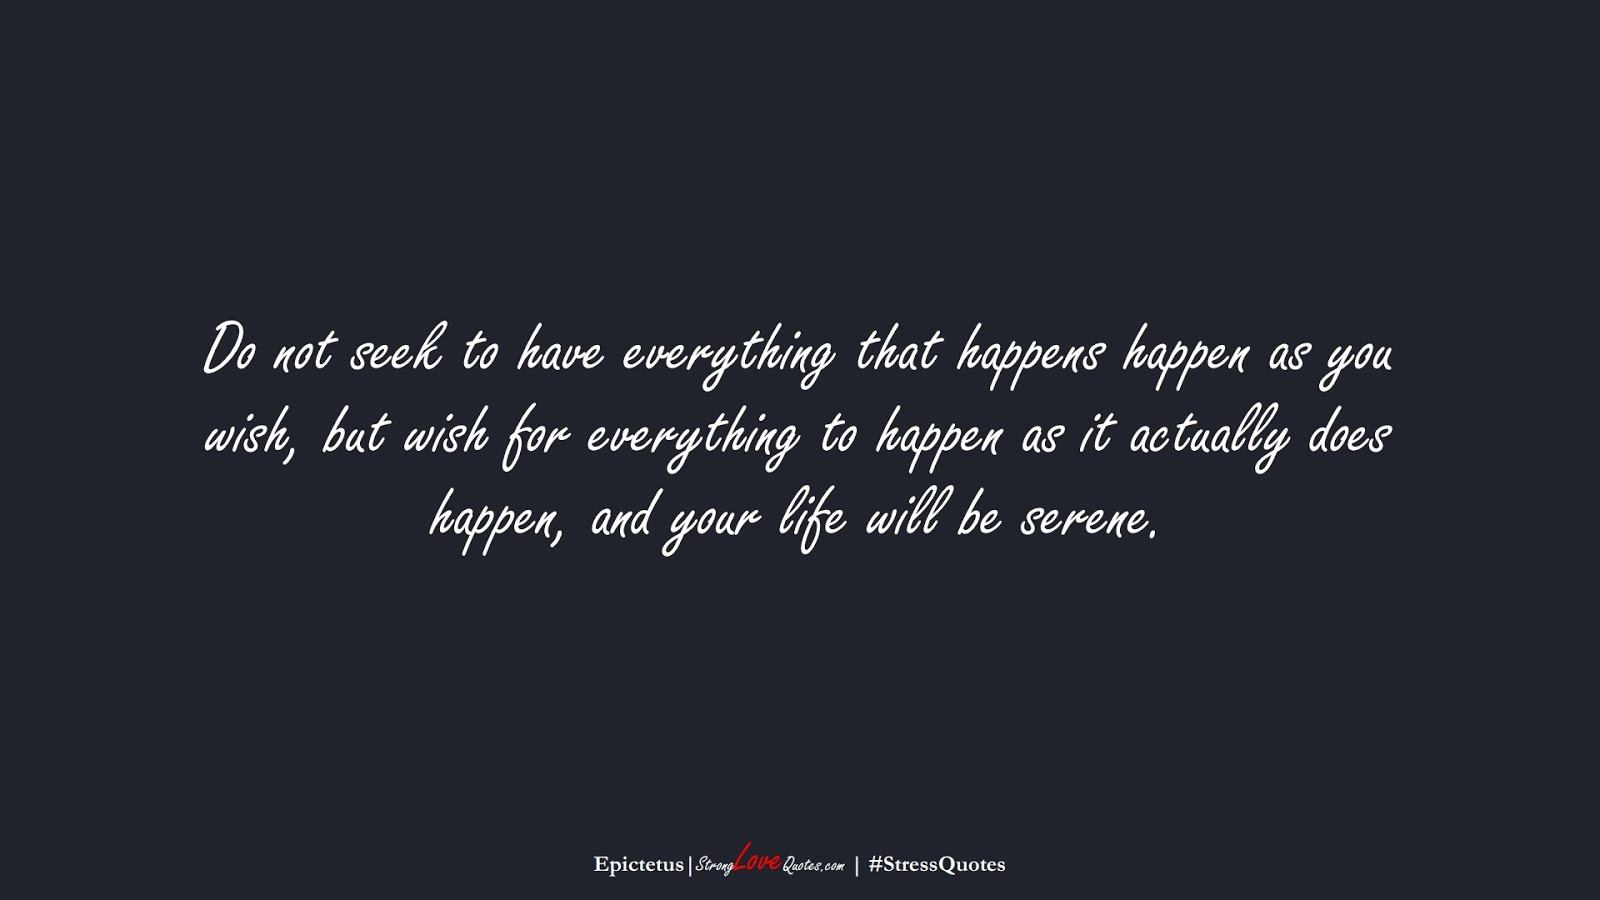 Do not seek to have everything that happens happen as you wish, but wish for everything to happen as it actually does happen, and your life will be serene. (Epictetus);  #StressQuotes